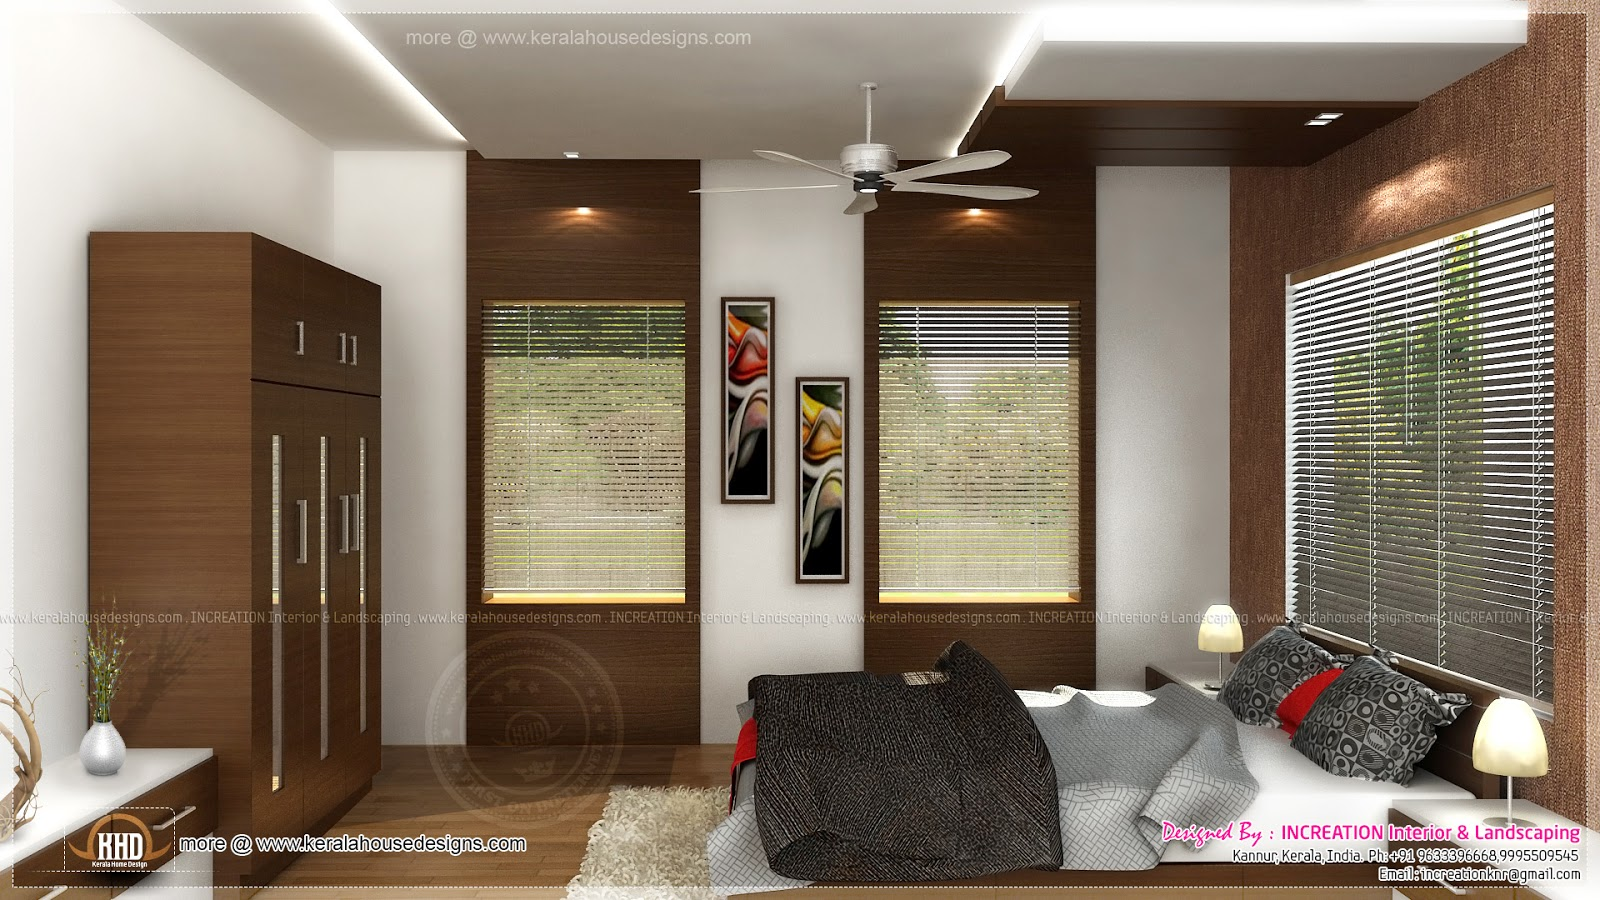 Interior designs from kannur kerala kerala home design for House interior design photos